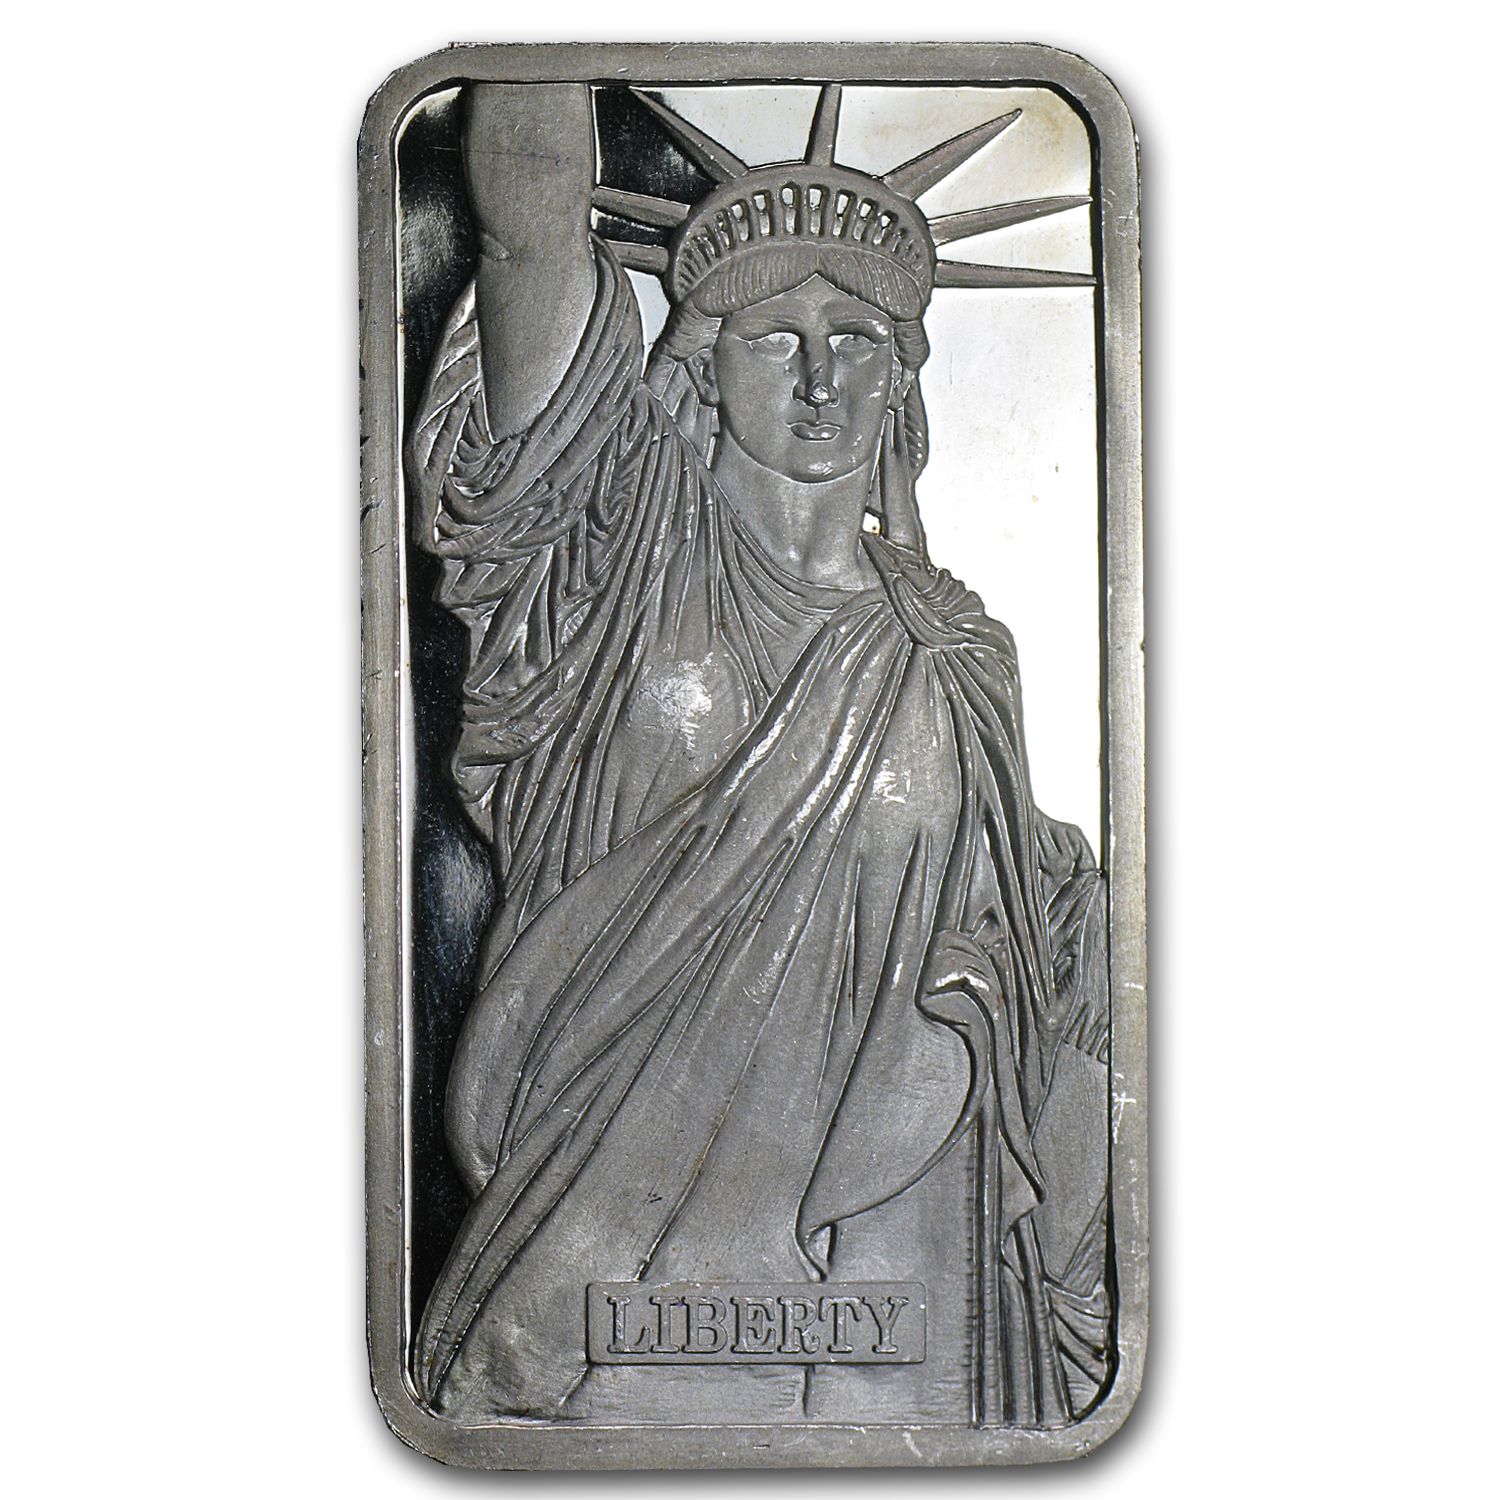 5 oz Silver Bar - Johnson Matthey (Statue of Liberty/MTB)